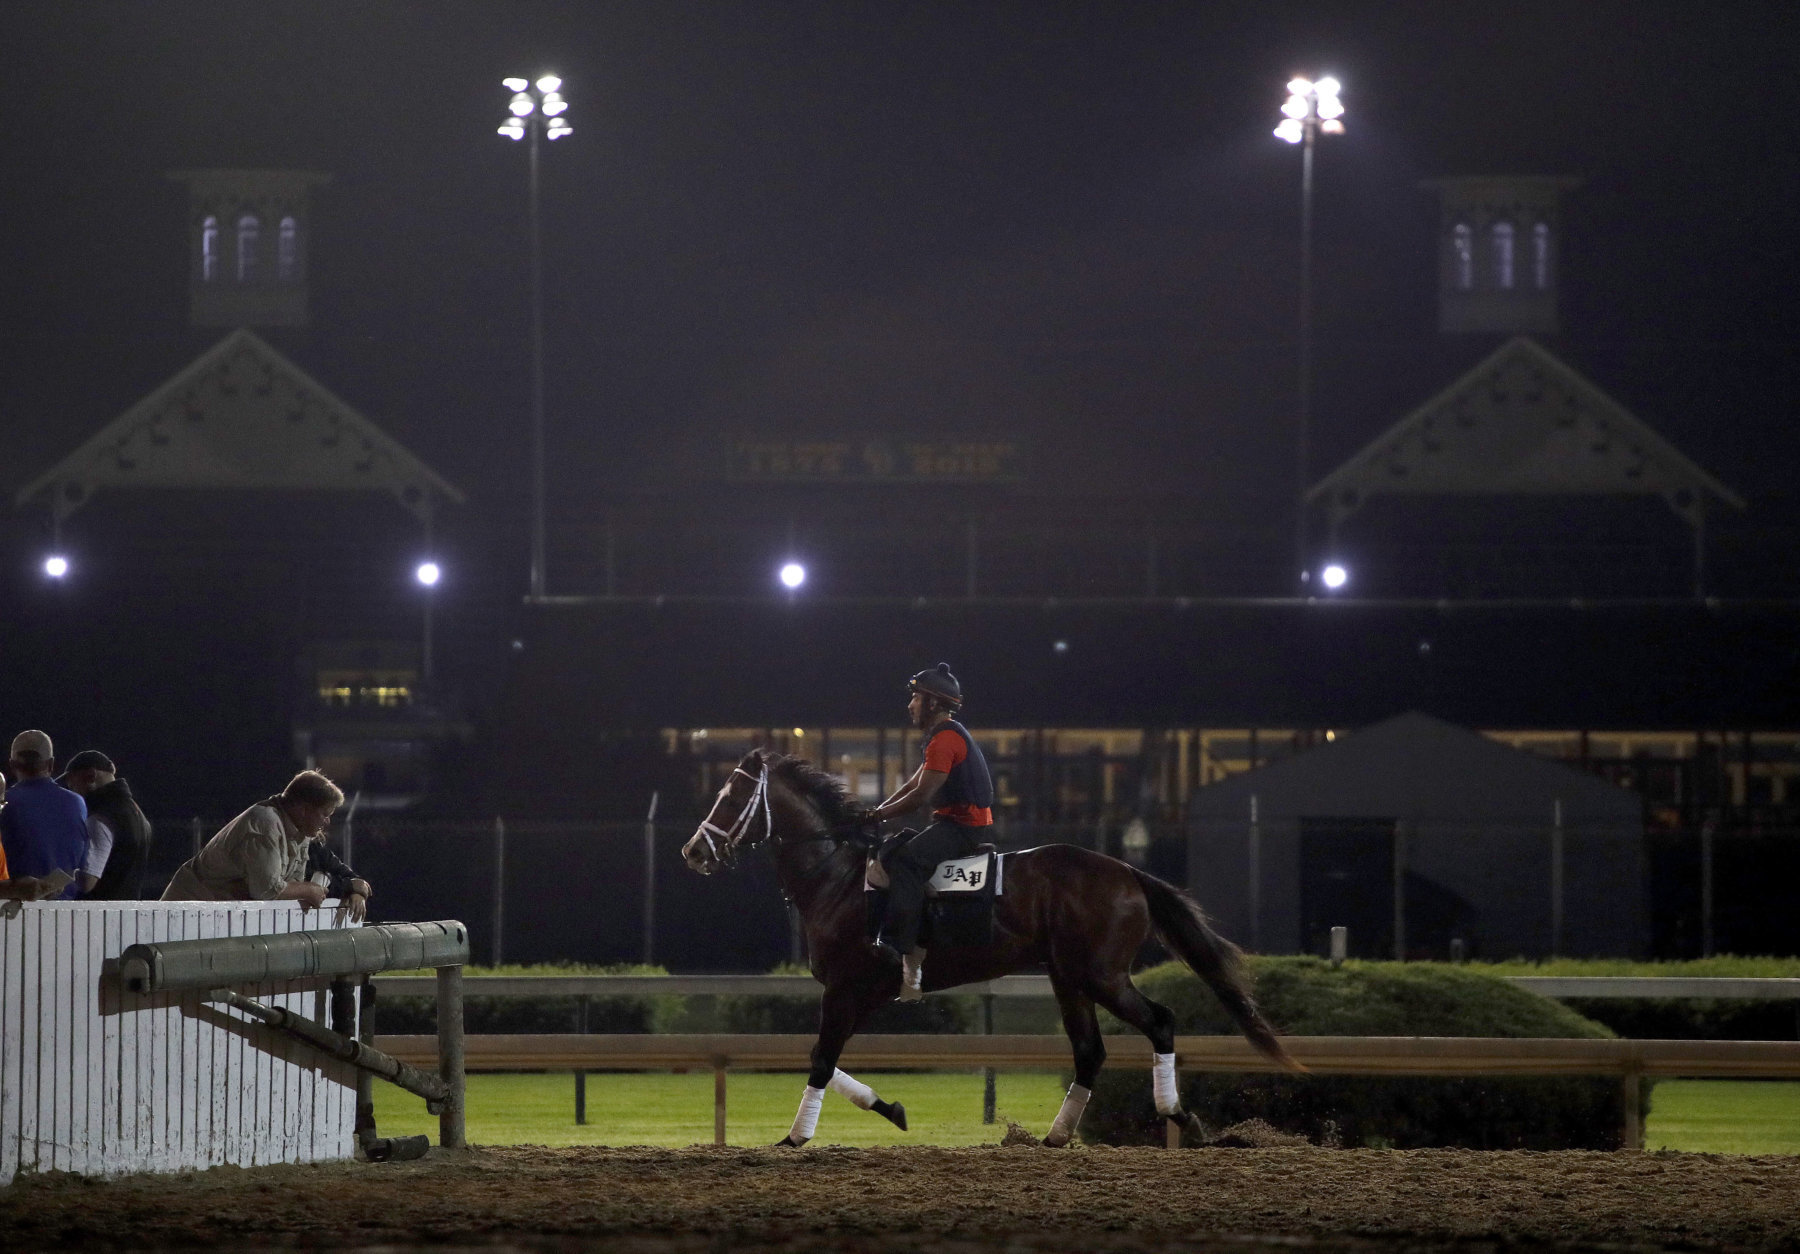 A horse trains during a morning workout at Churchill Downs Thursday, May 3, 2018, in Louisville, Ky. The 144th running of the Kentucky Derby is scheduled for Saturday, May 5. (AP Photo/Charlie Riedel